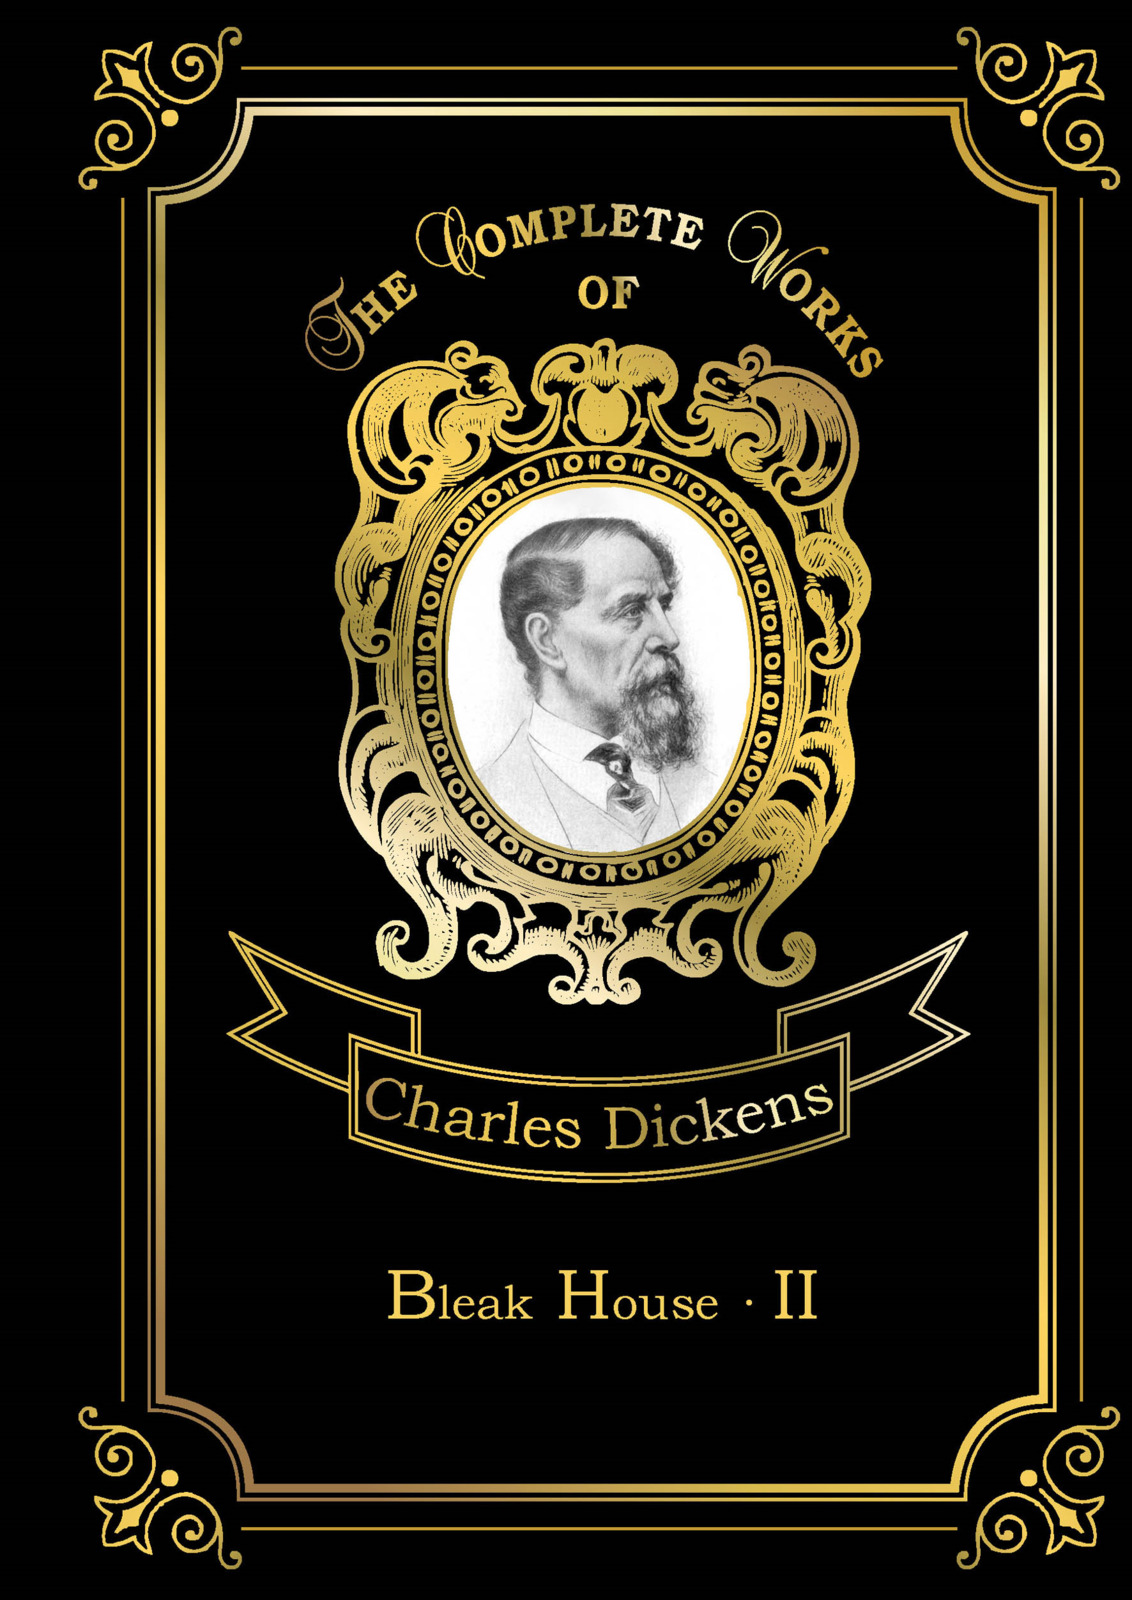 Charles Dickens Bleak House II bleak bleak burns inside